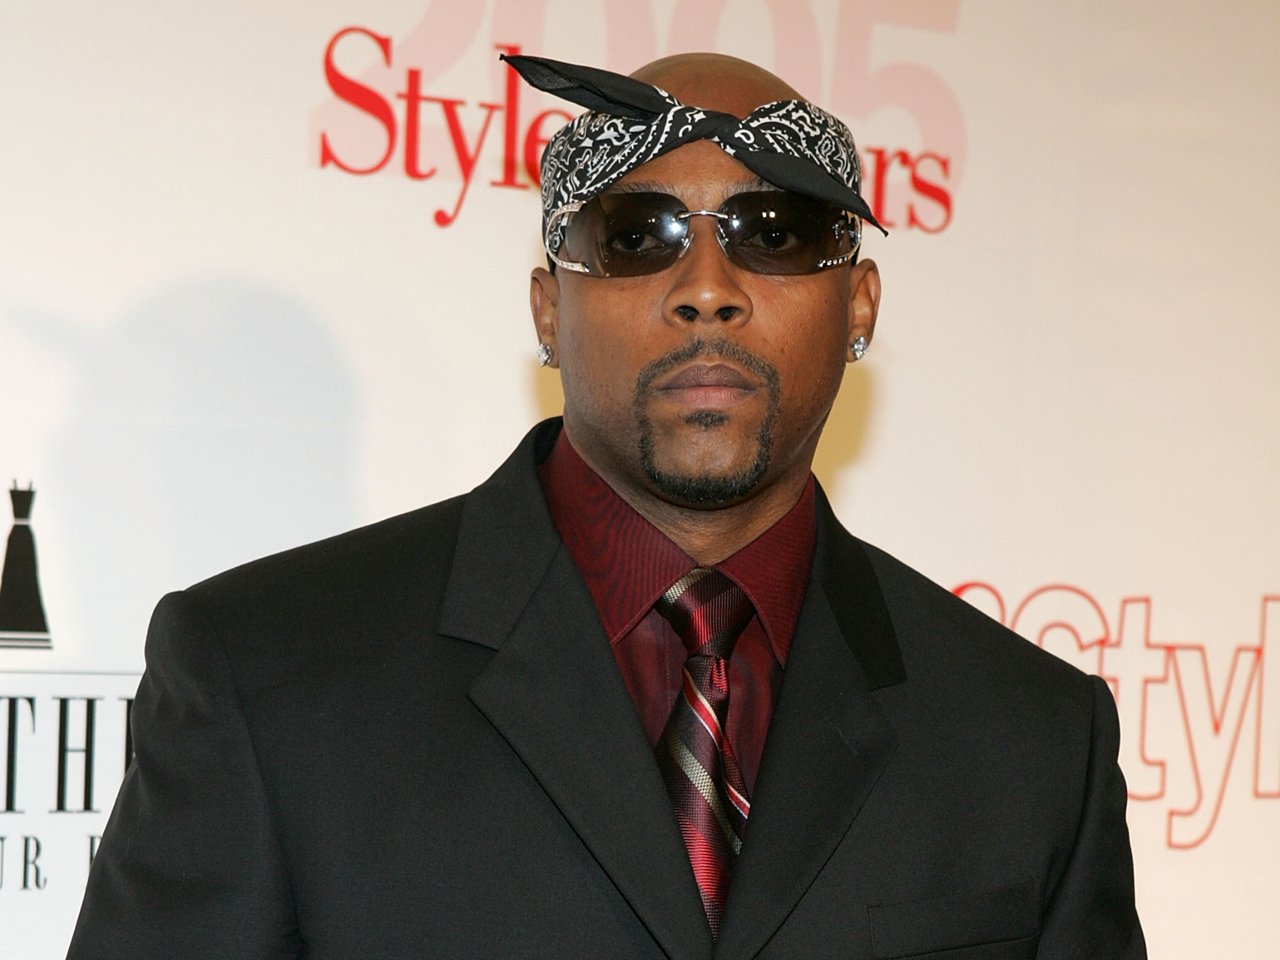 Nate Dogg is dead at 41 - CBS News